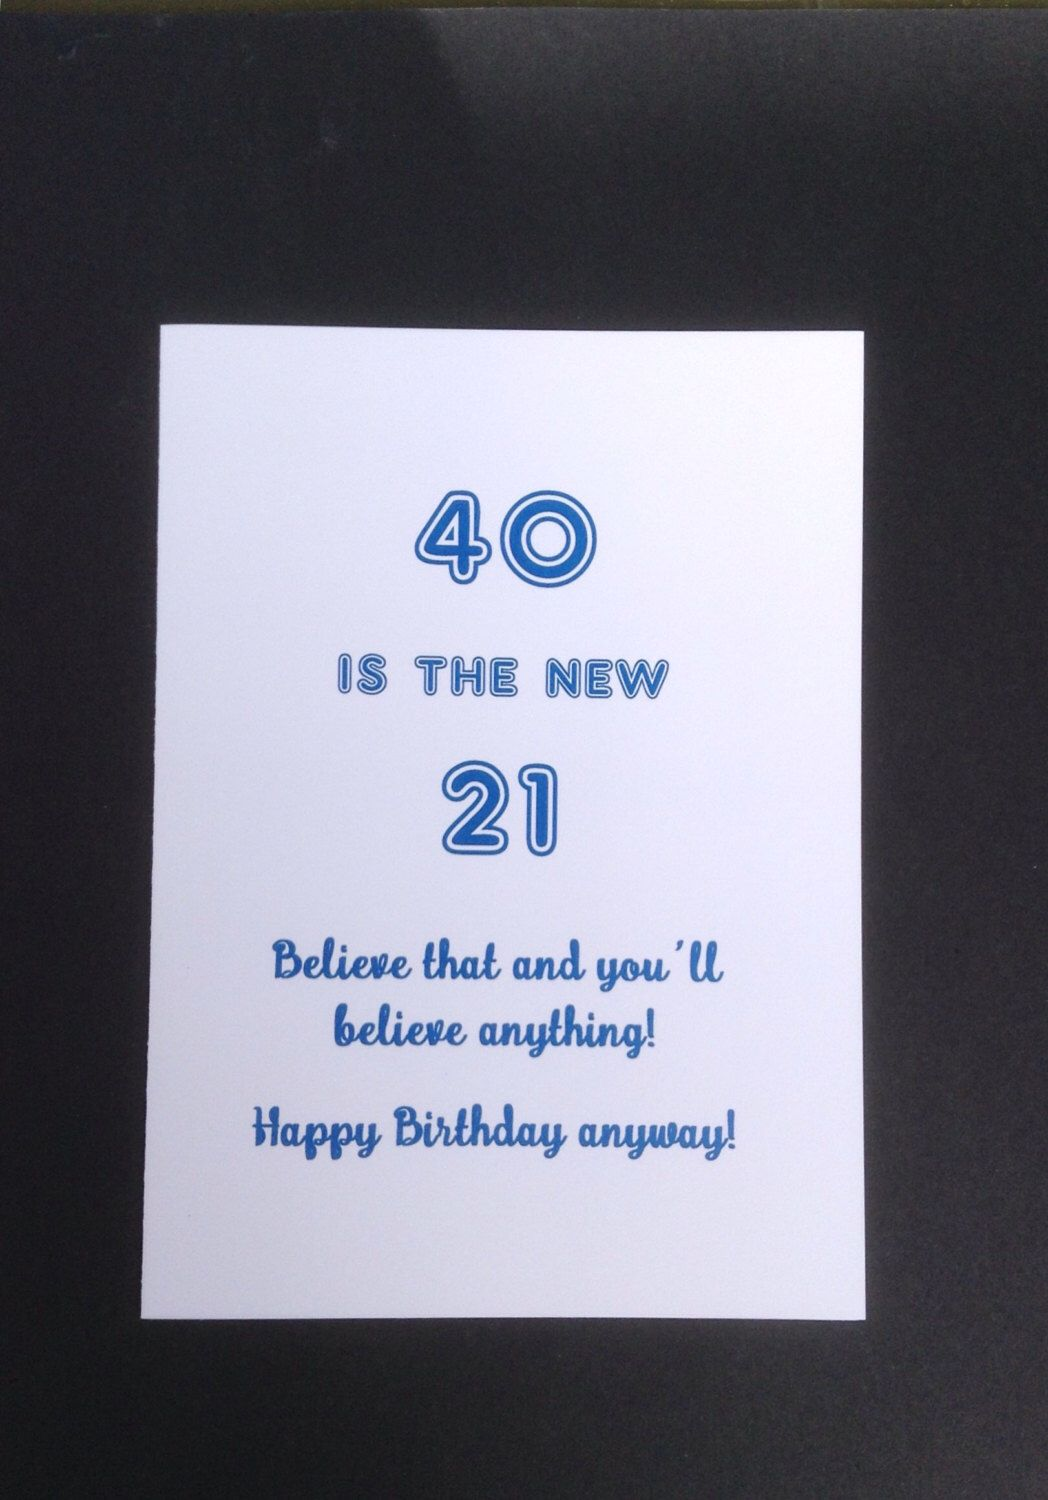 40th Birthday Card Card For 40 Year Old Funny 40th Milestone Birthday Card For Man Or Woman 30th Card For Boyfriend Girlfriend Friend Birthday Card Sayings 40th Birthday Funny Birthday Cards